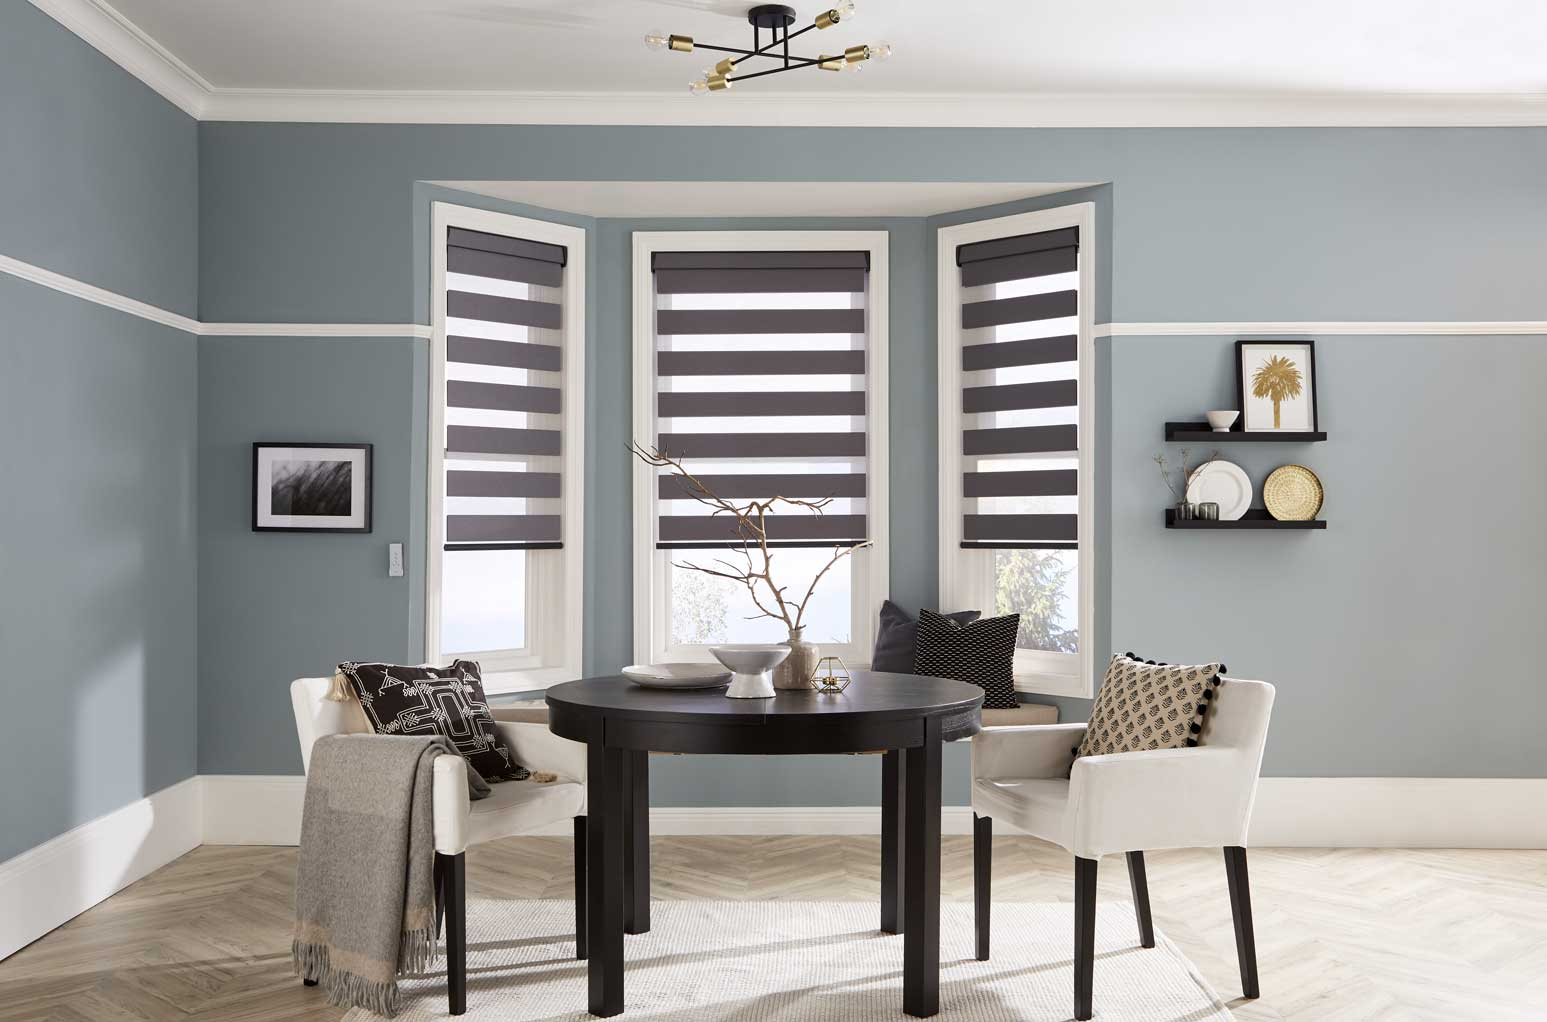 Three Verona Pewter Blinds in a dining room